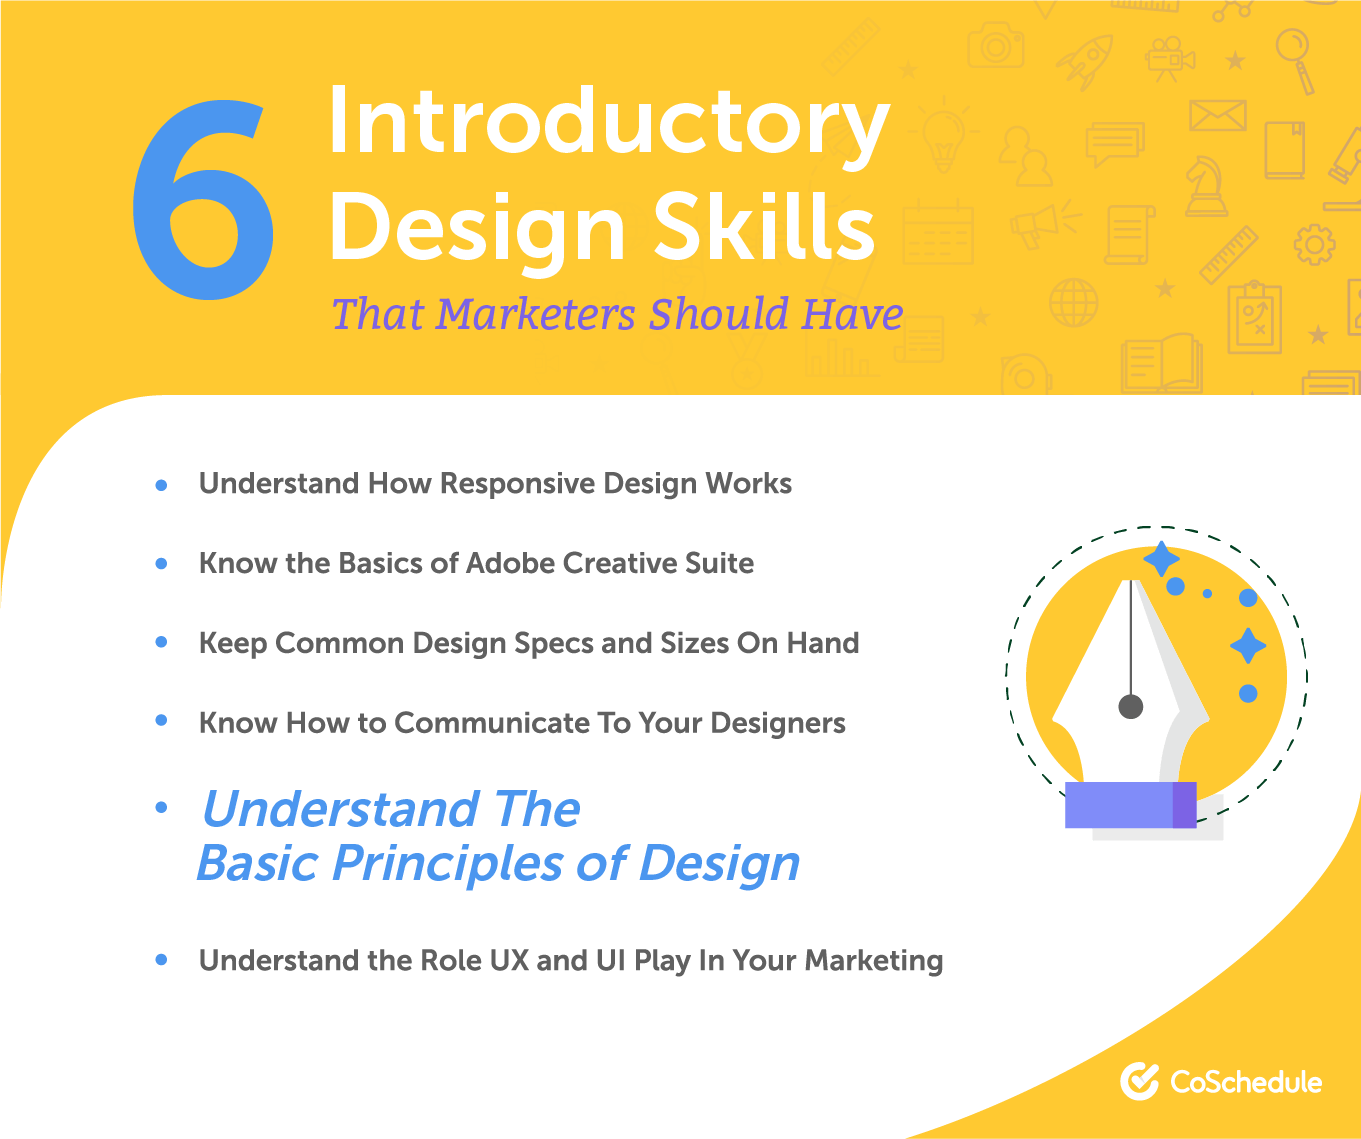 6 introductory design skills marketers should have.